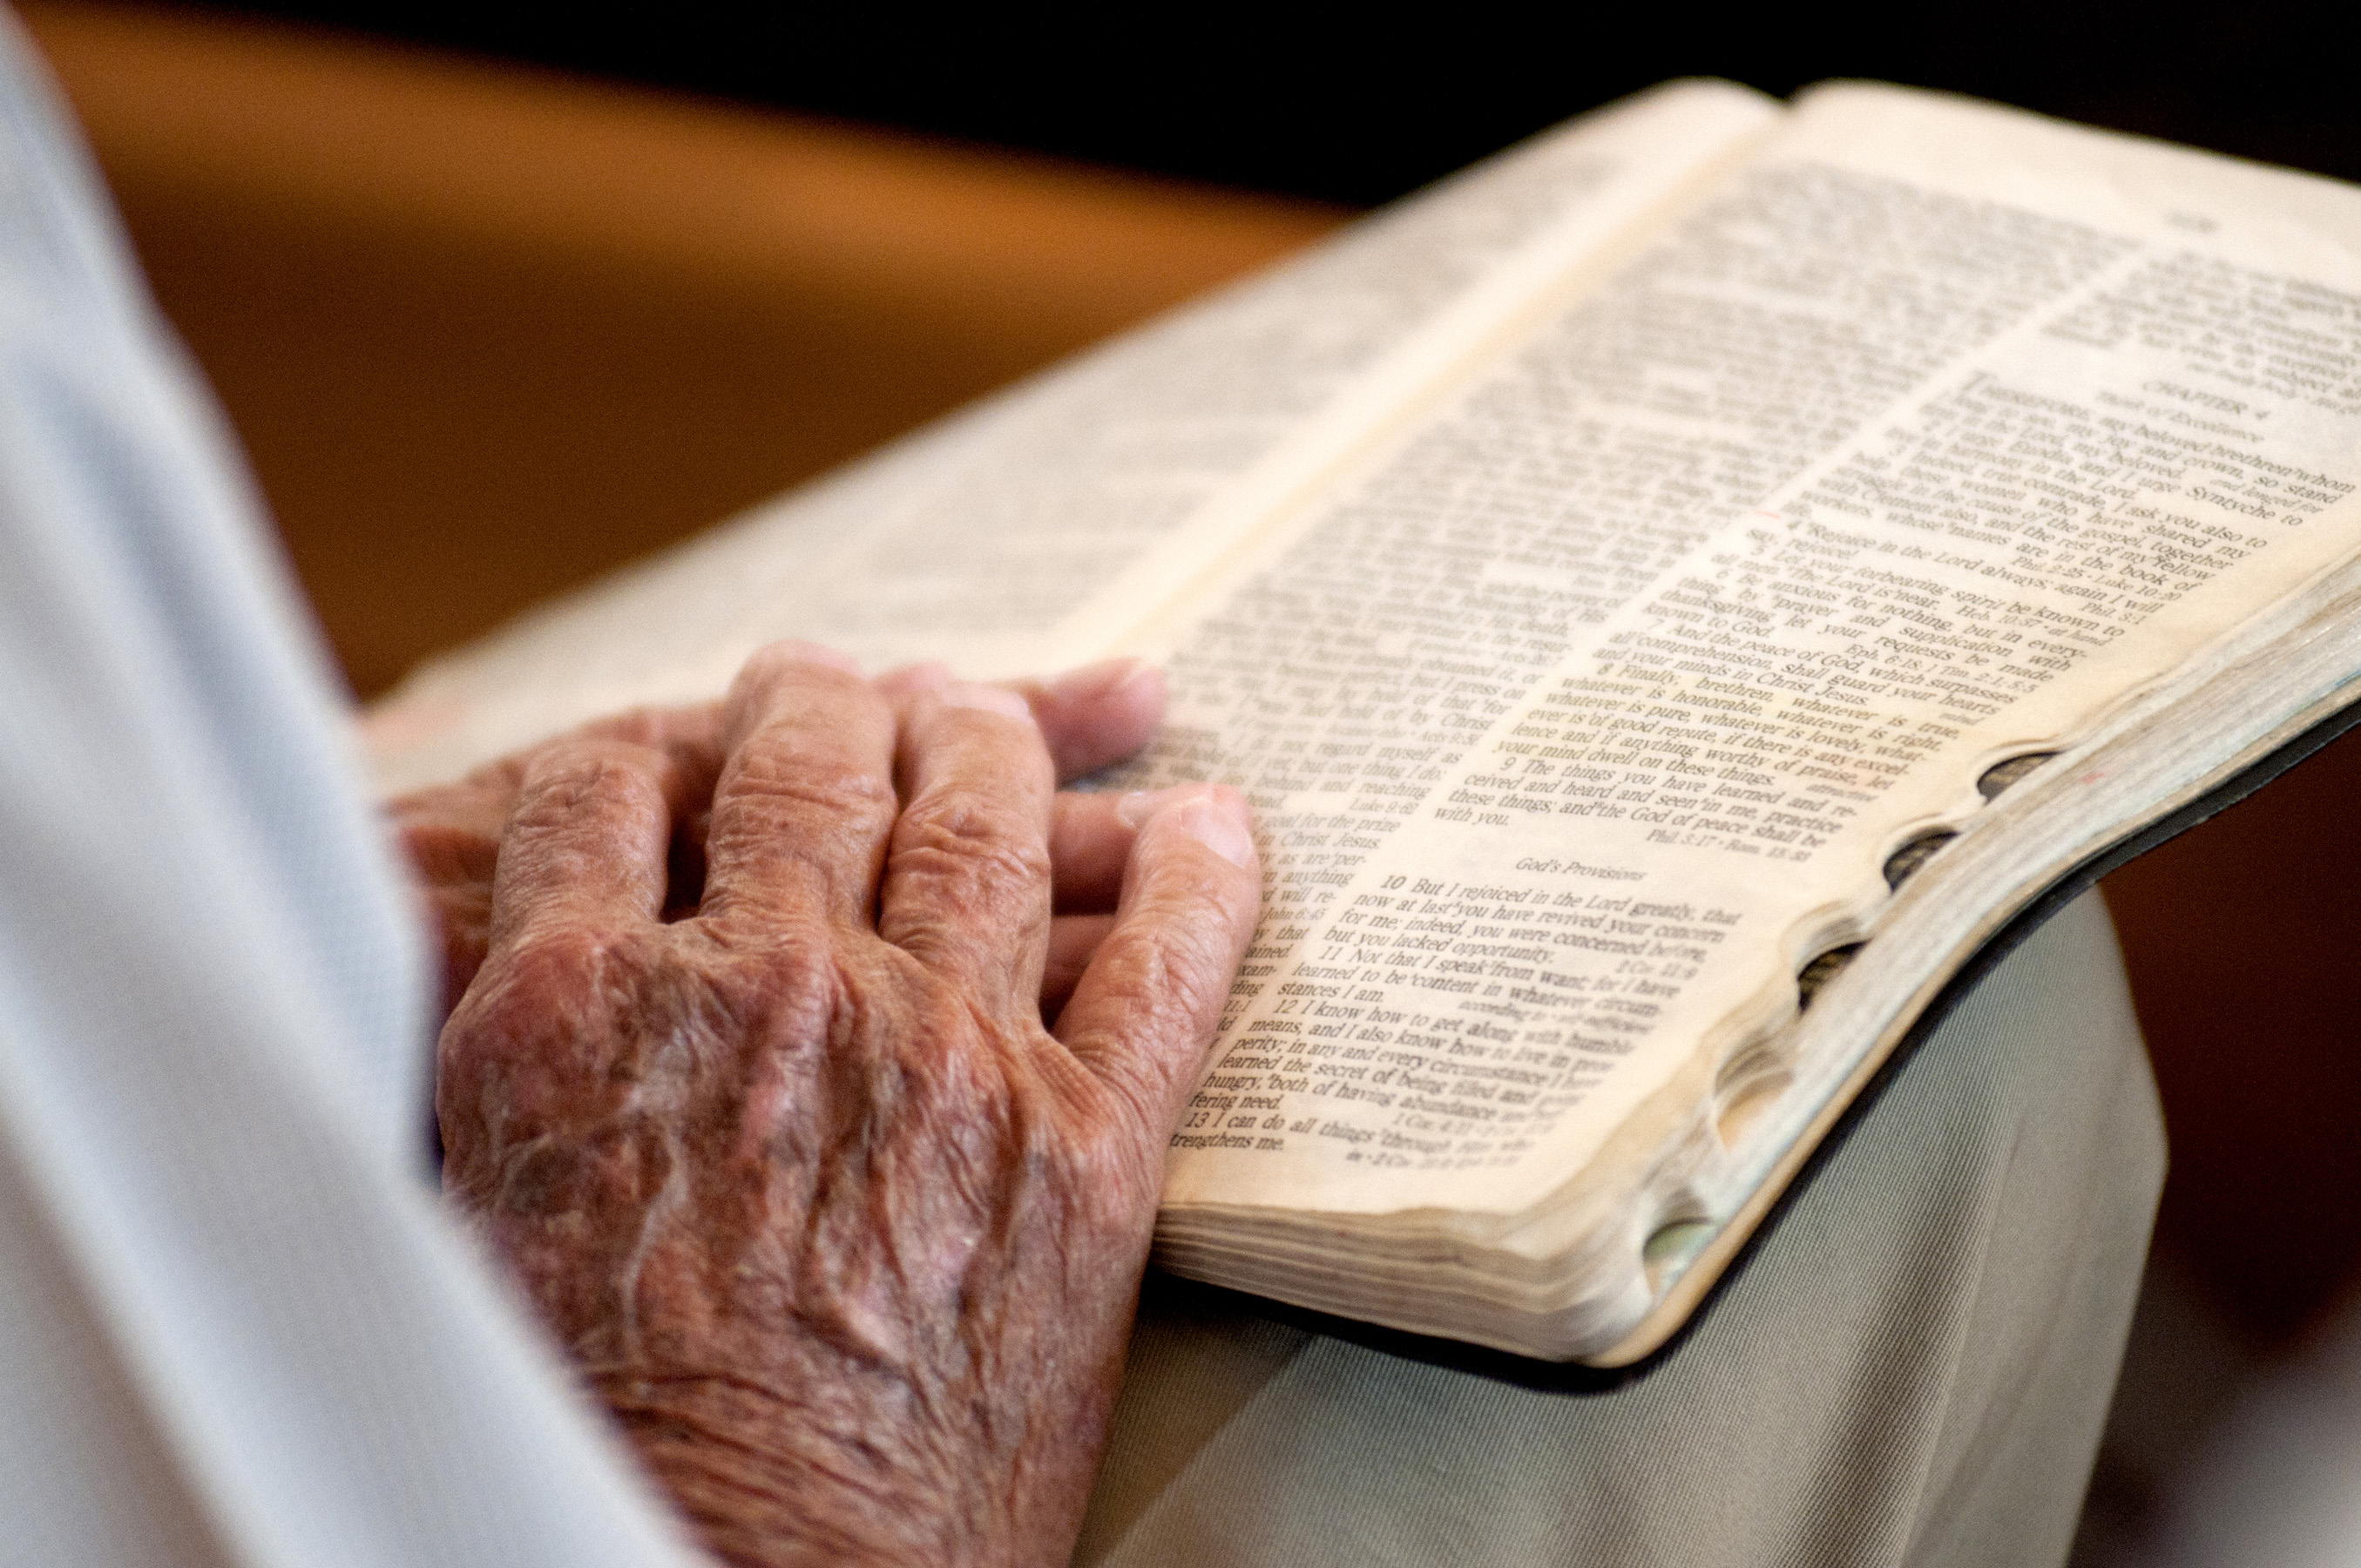 a-cu-bible-hands-old_8991